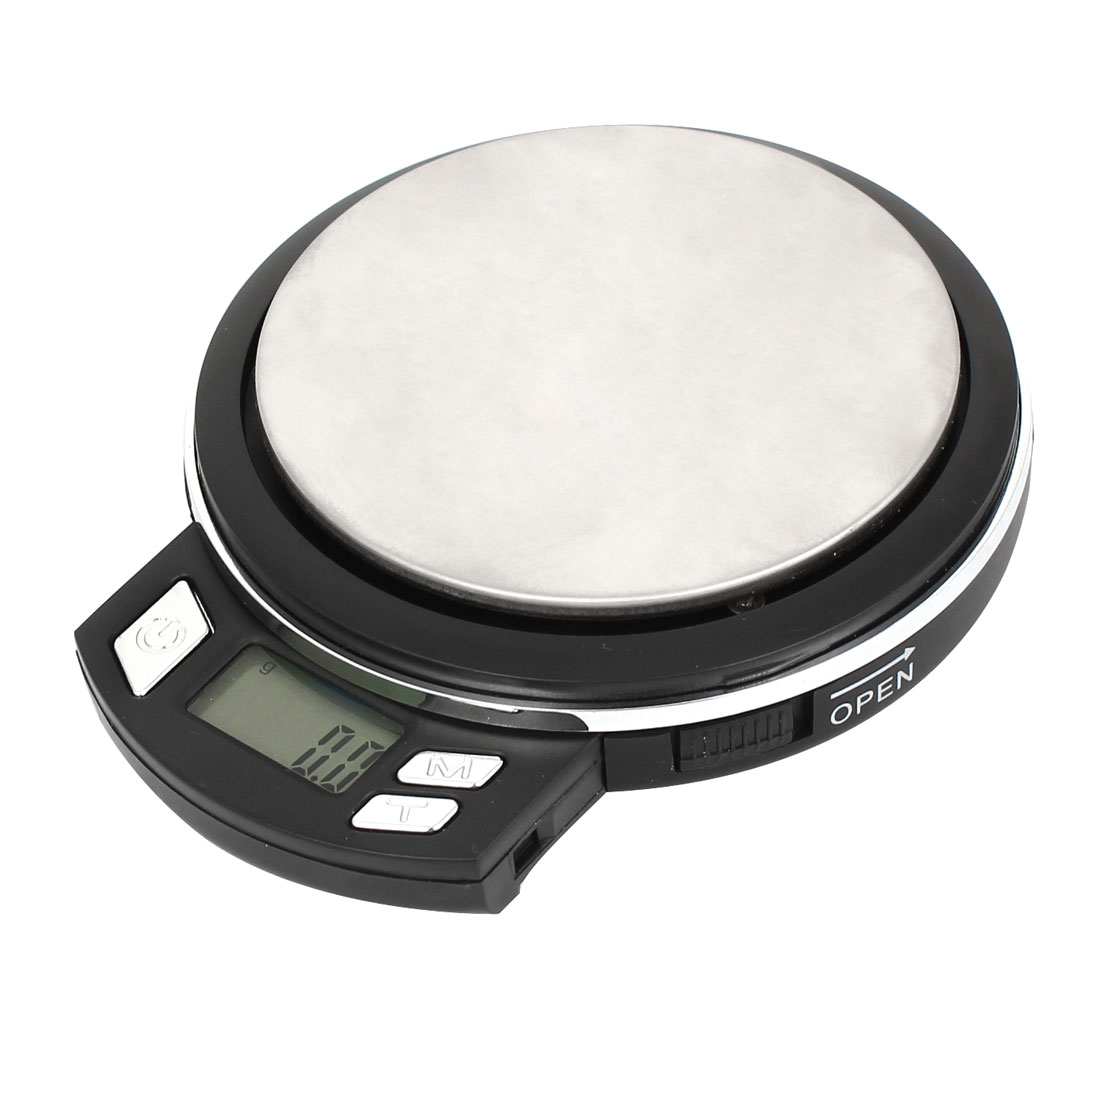 Round Shape 0.1g 500g Jewelry Weight Balance Mini Digital Pocket Scale